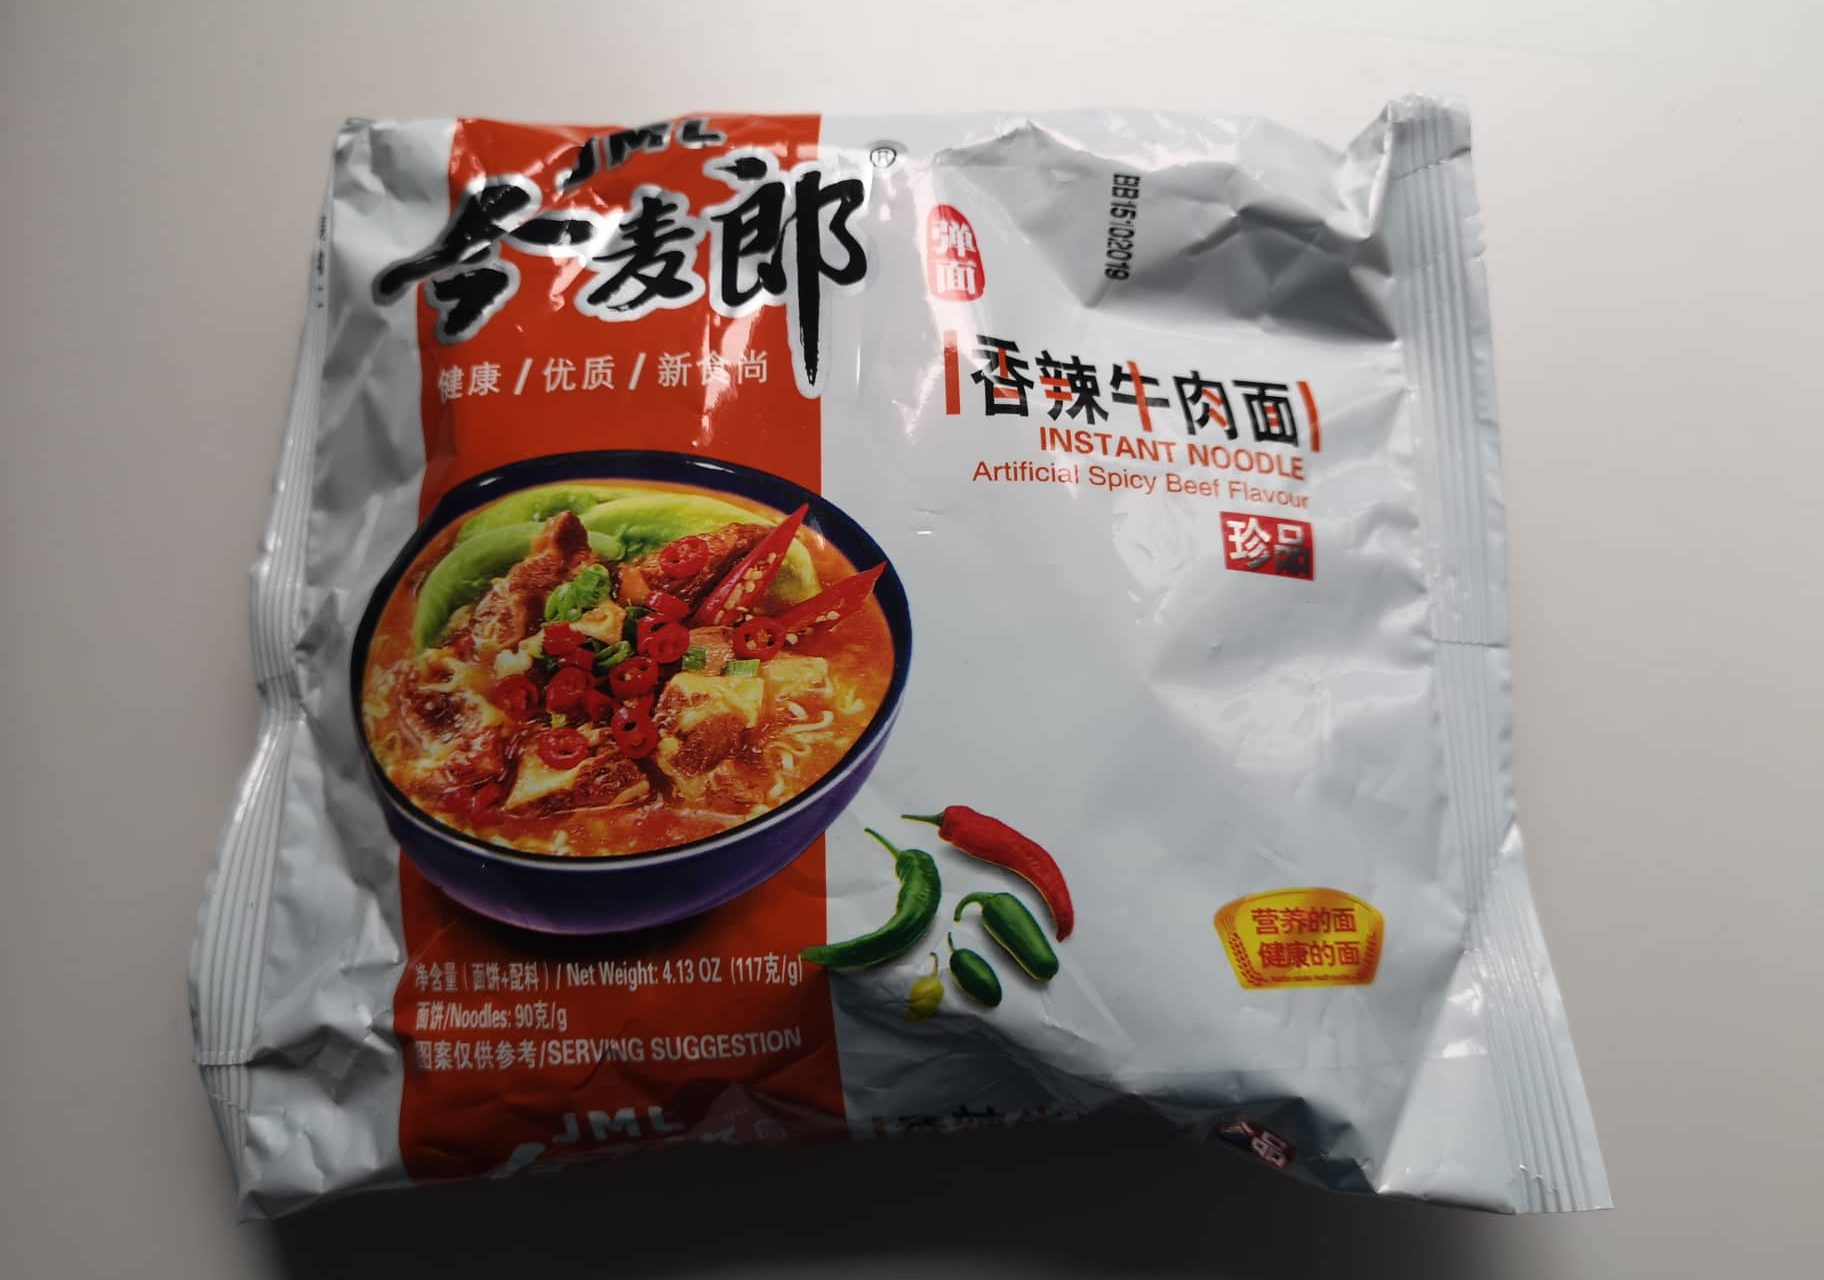 "#1698: Jin Mai Lang ""Instant Noodle Artificial Spicy Beef Flavour"" (2019)"